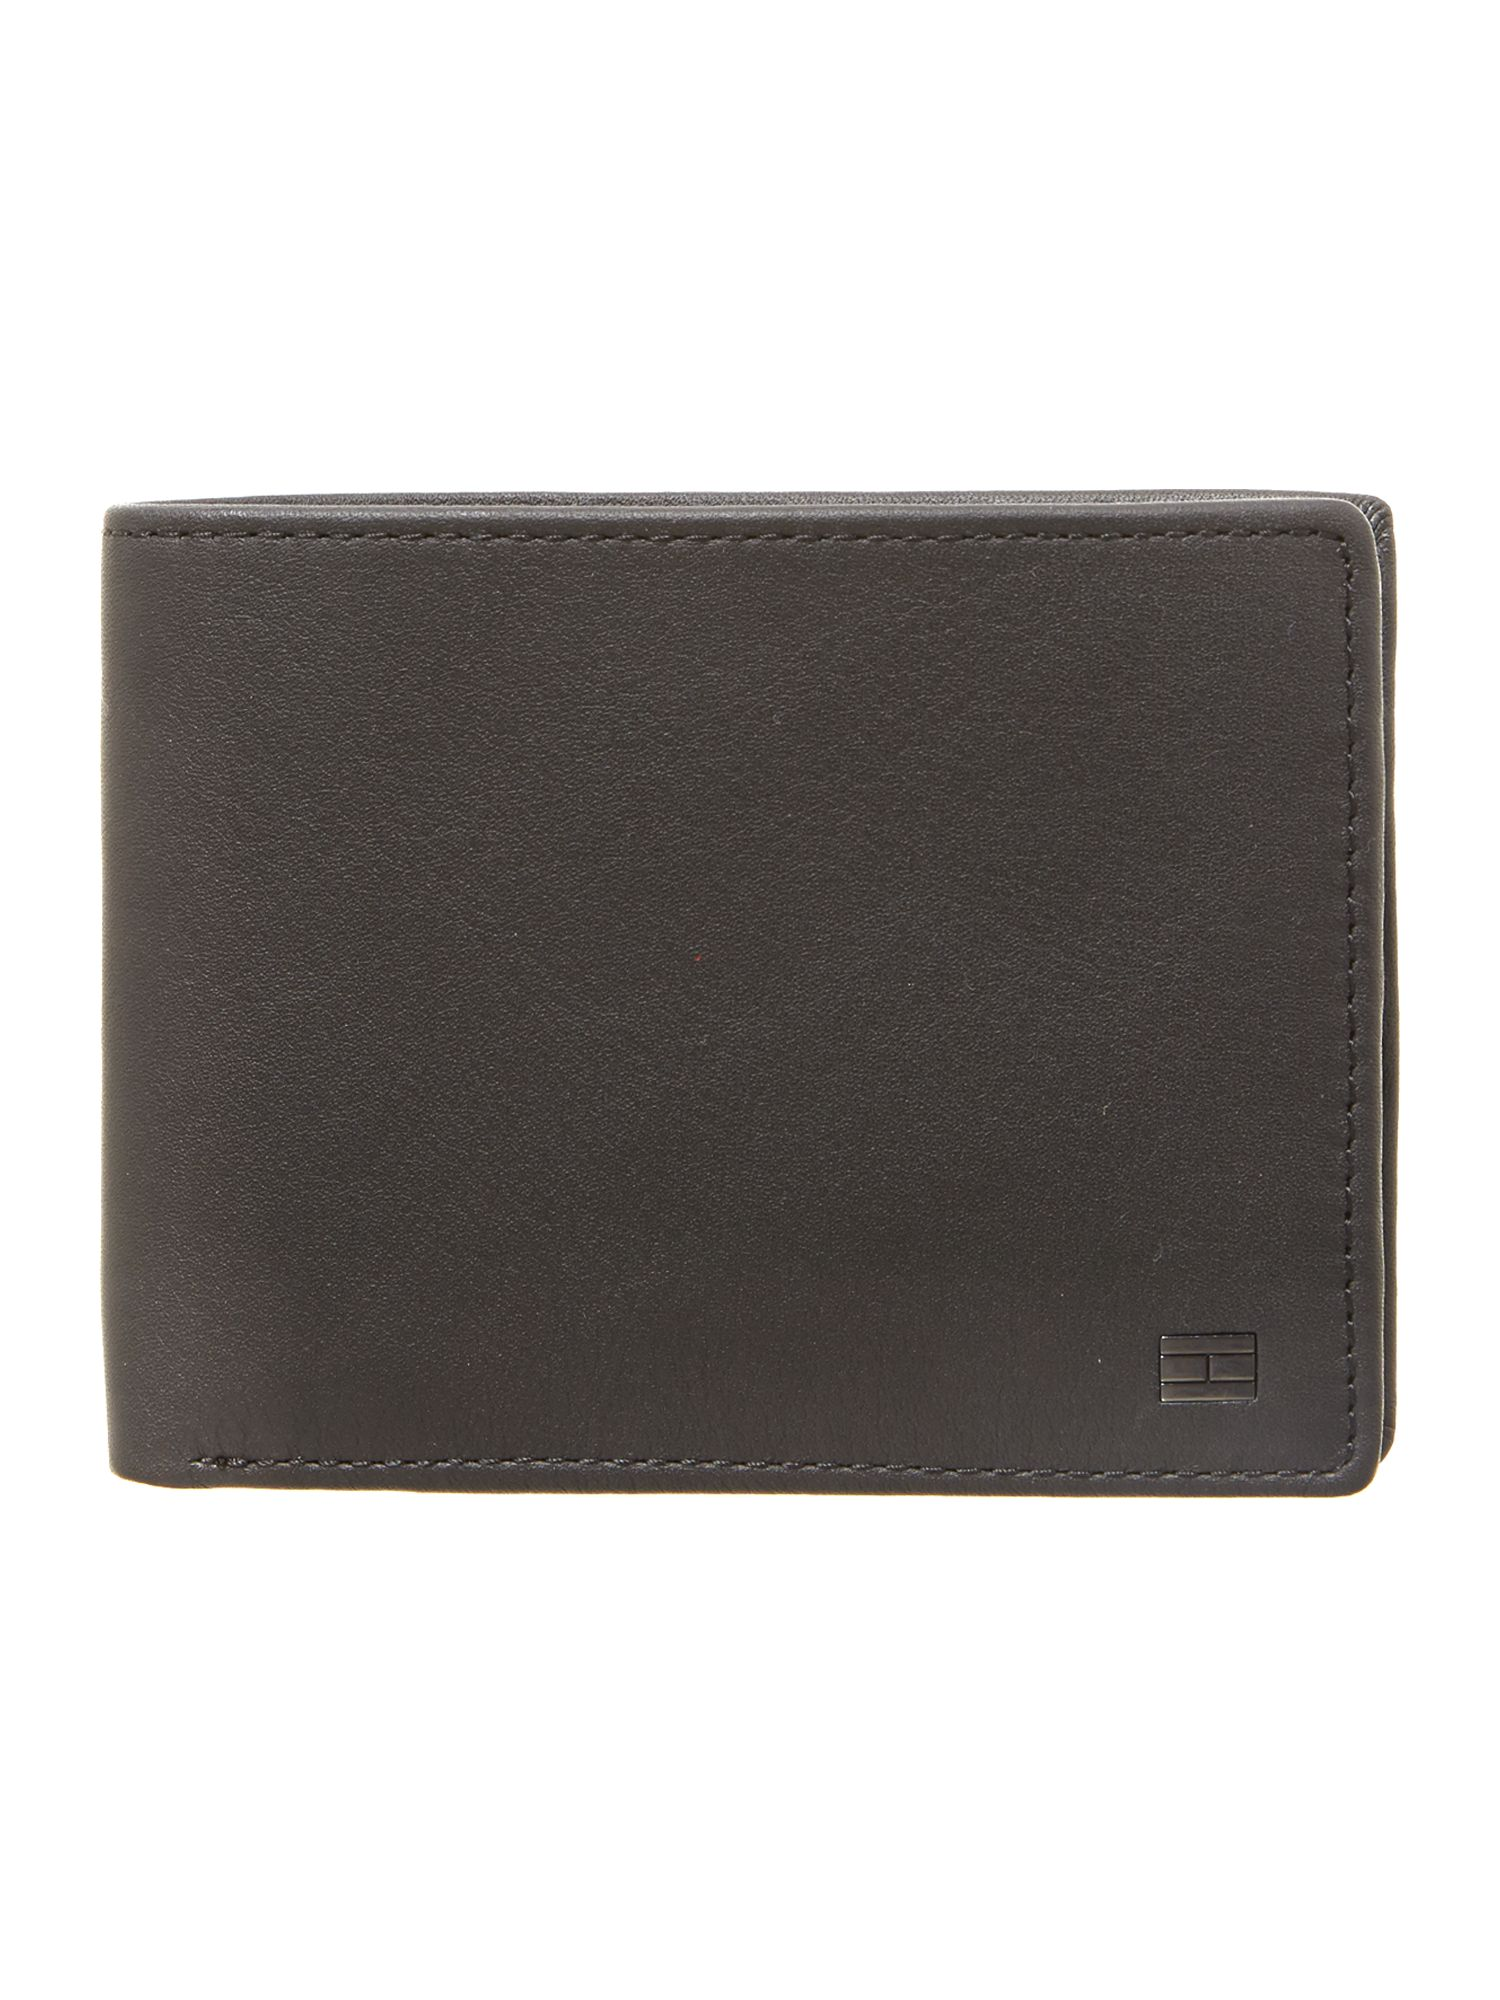 Walker with coin pocket wallet